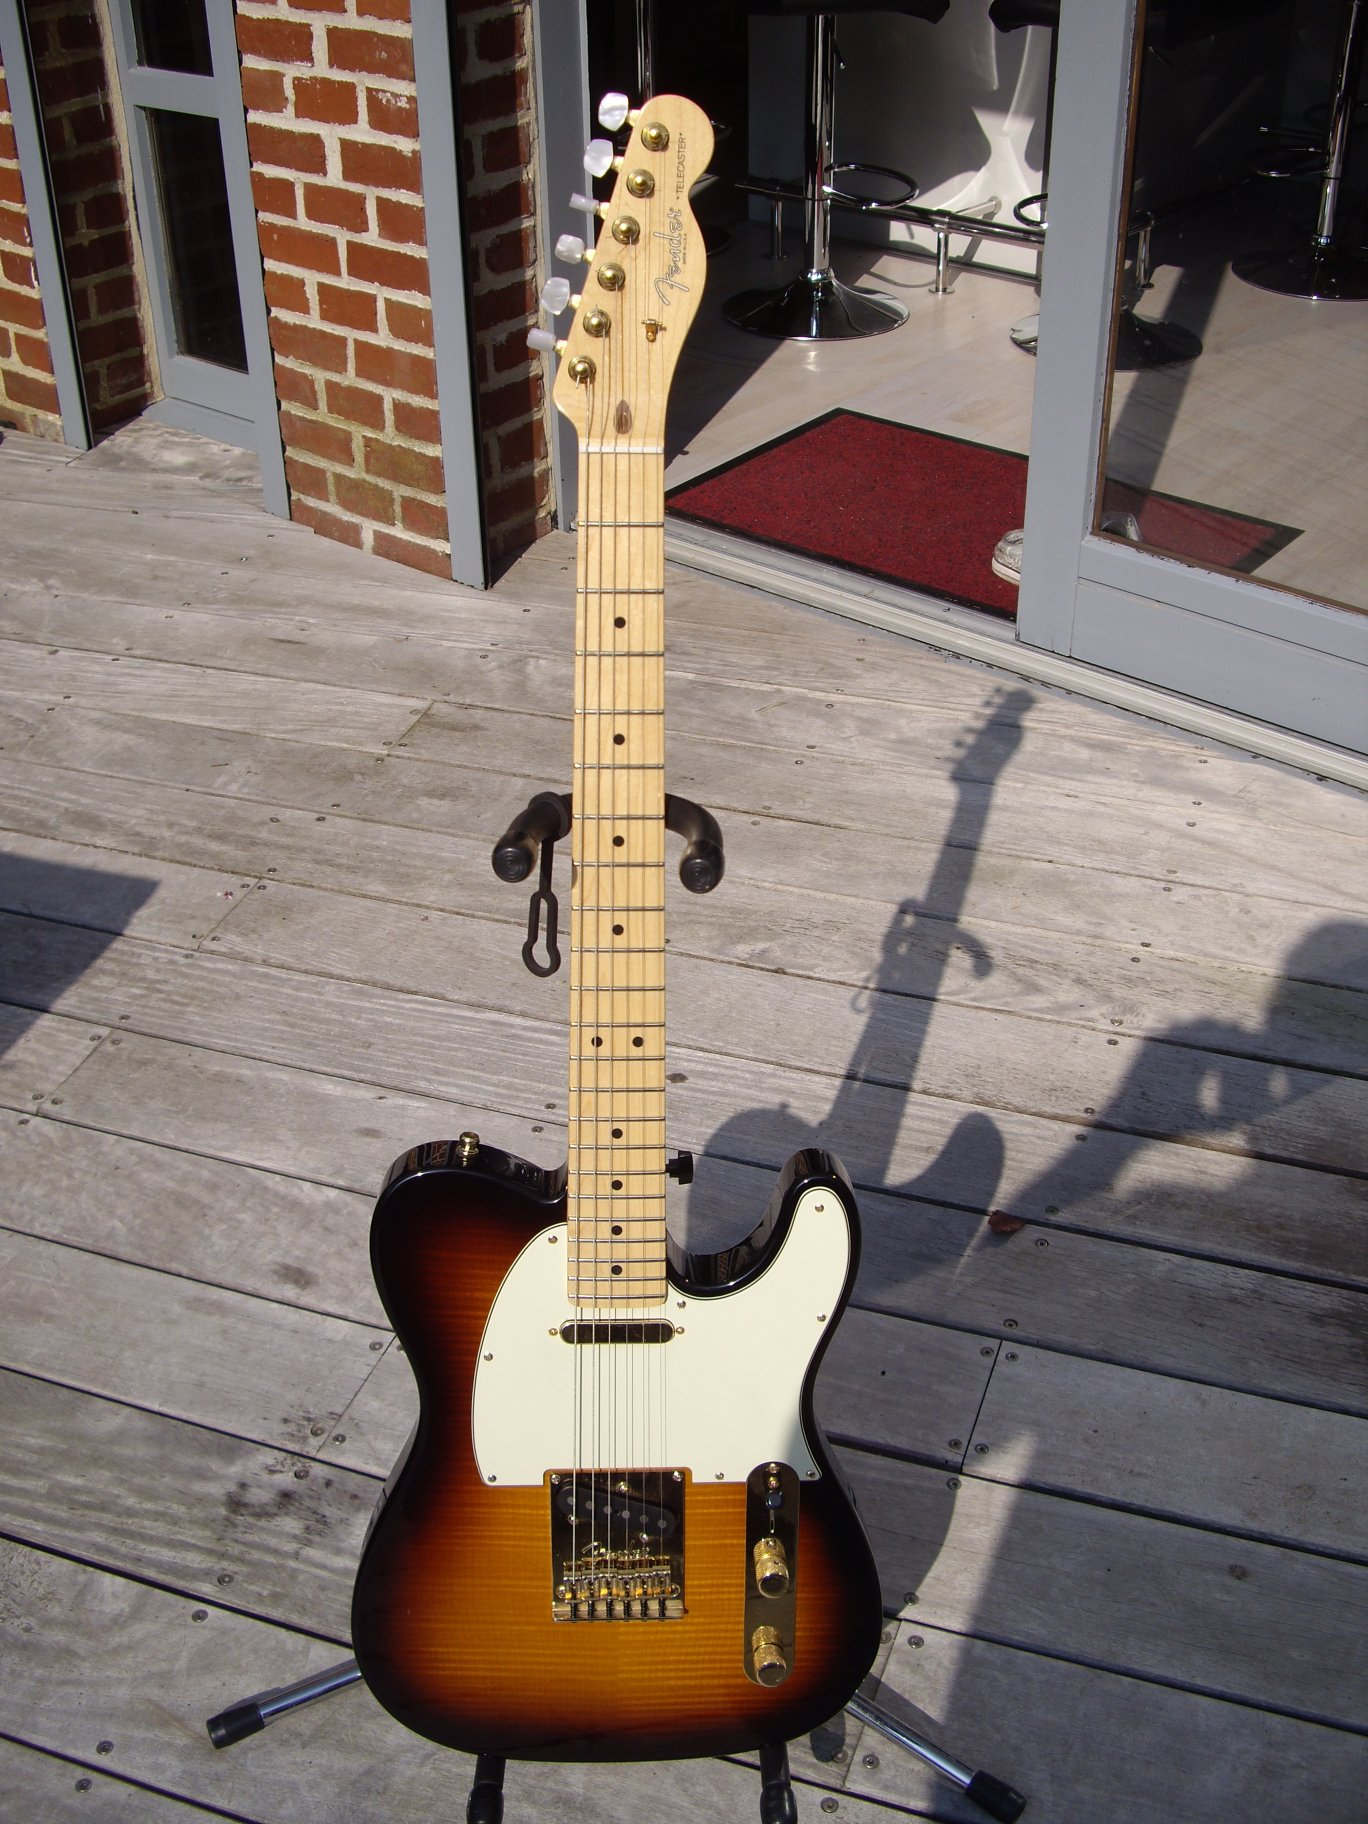 fender 60th anniversary american telecaster 2006 image 402829 audiofanzine. Black Bedroom Furniture Sets. Home Design Ideas